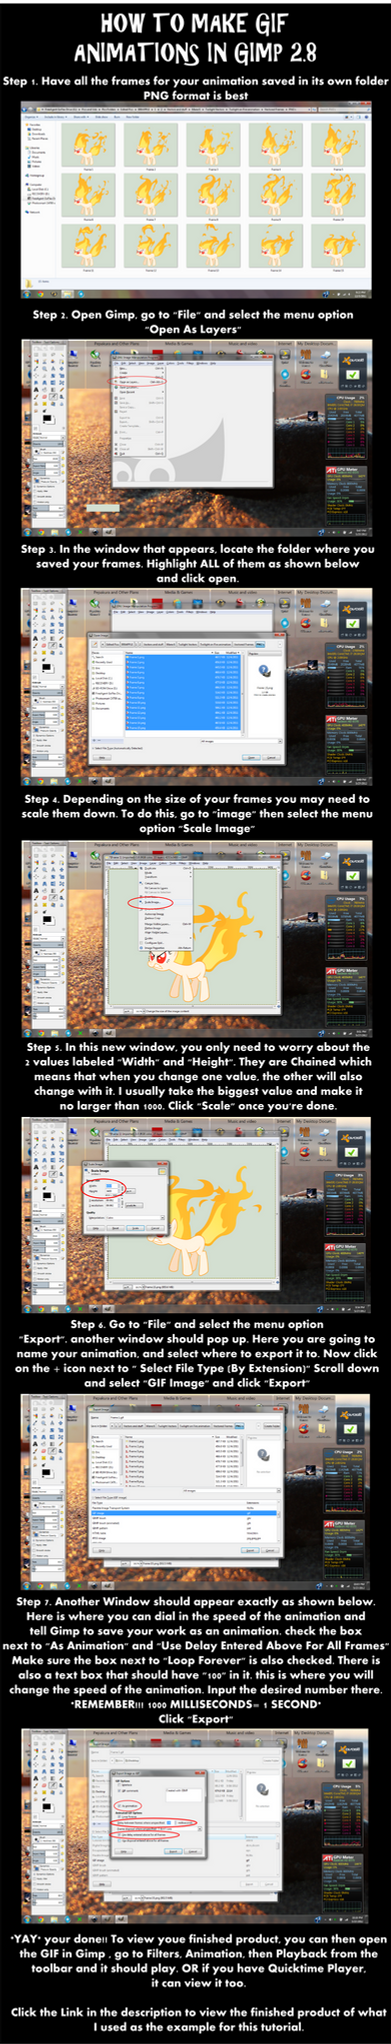 How To Make a GIF In Gimp 2.8 by EROCKERTORRES